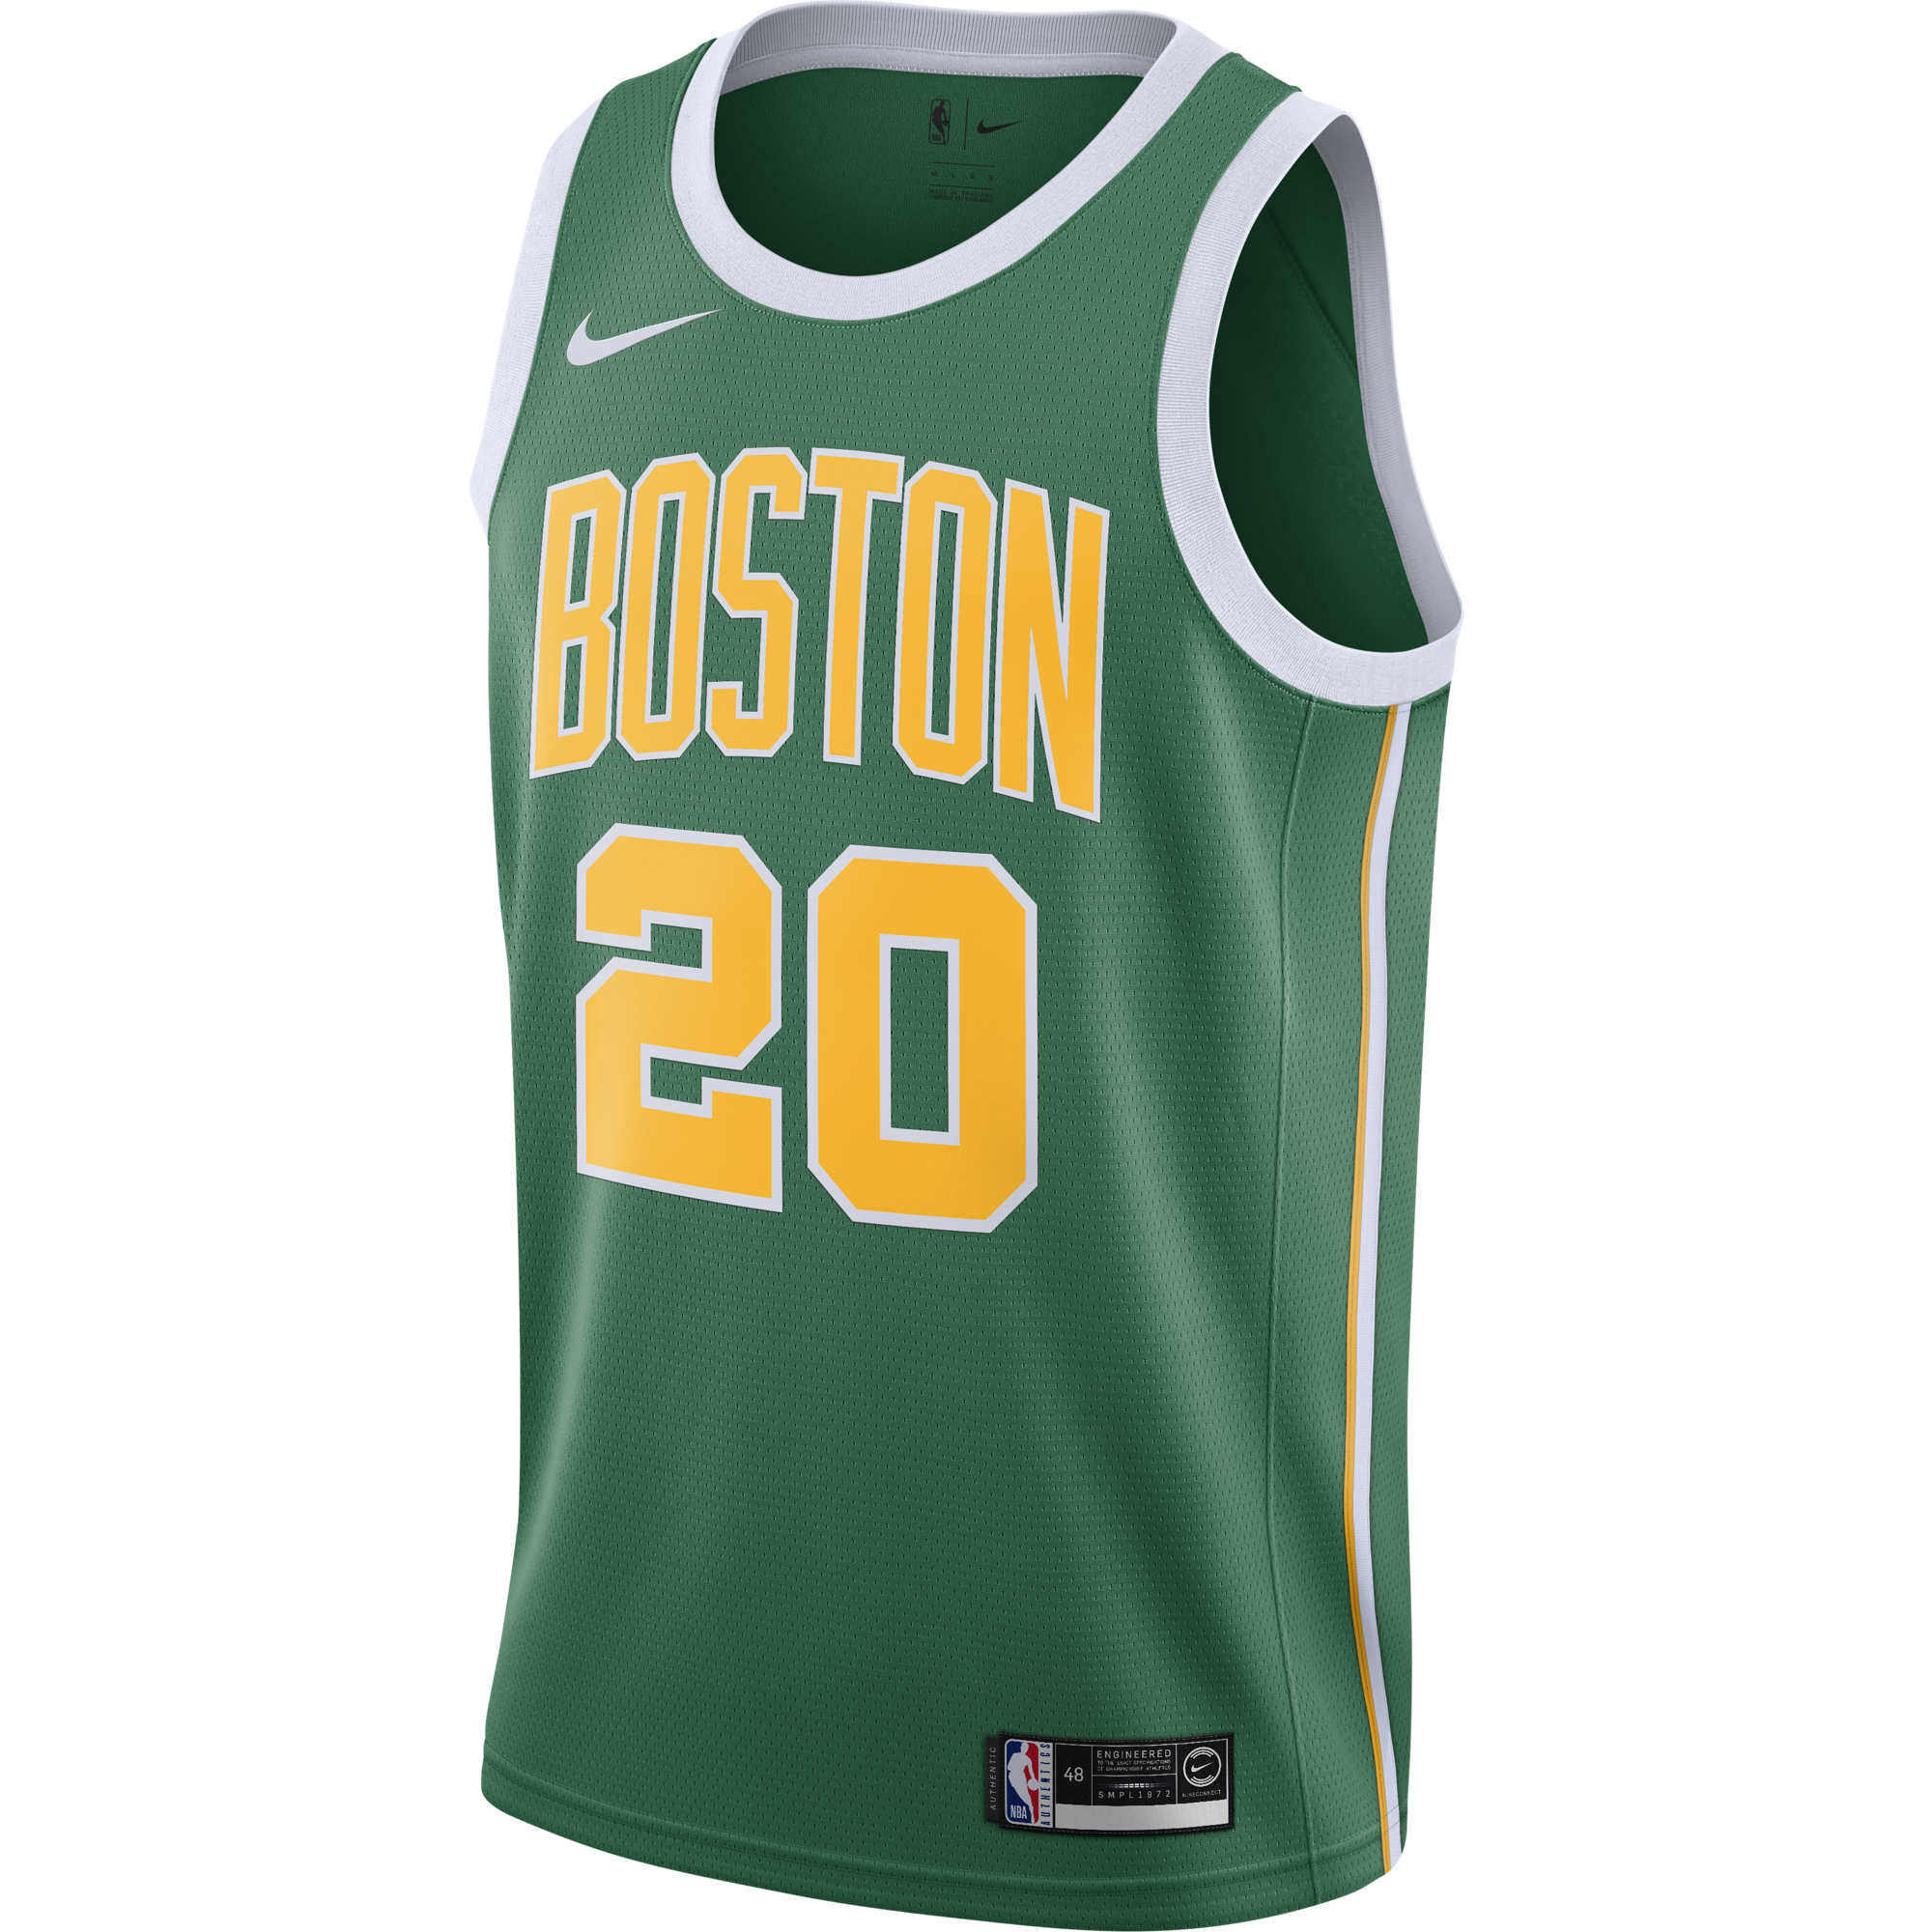 c404f0638969 Gordon Hayward Nike Swingman Jersey - Earned Edition for  109.99 Fanatics